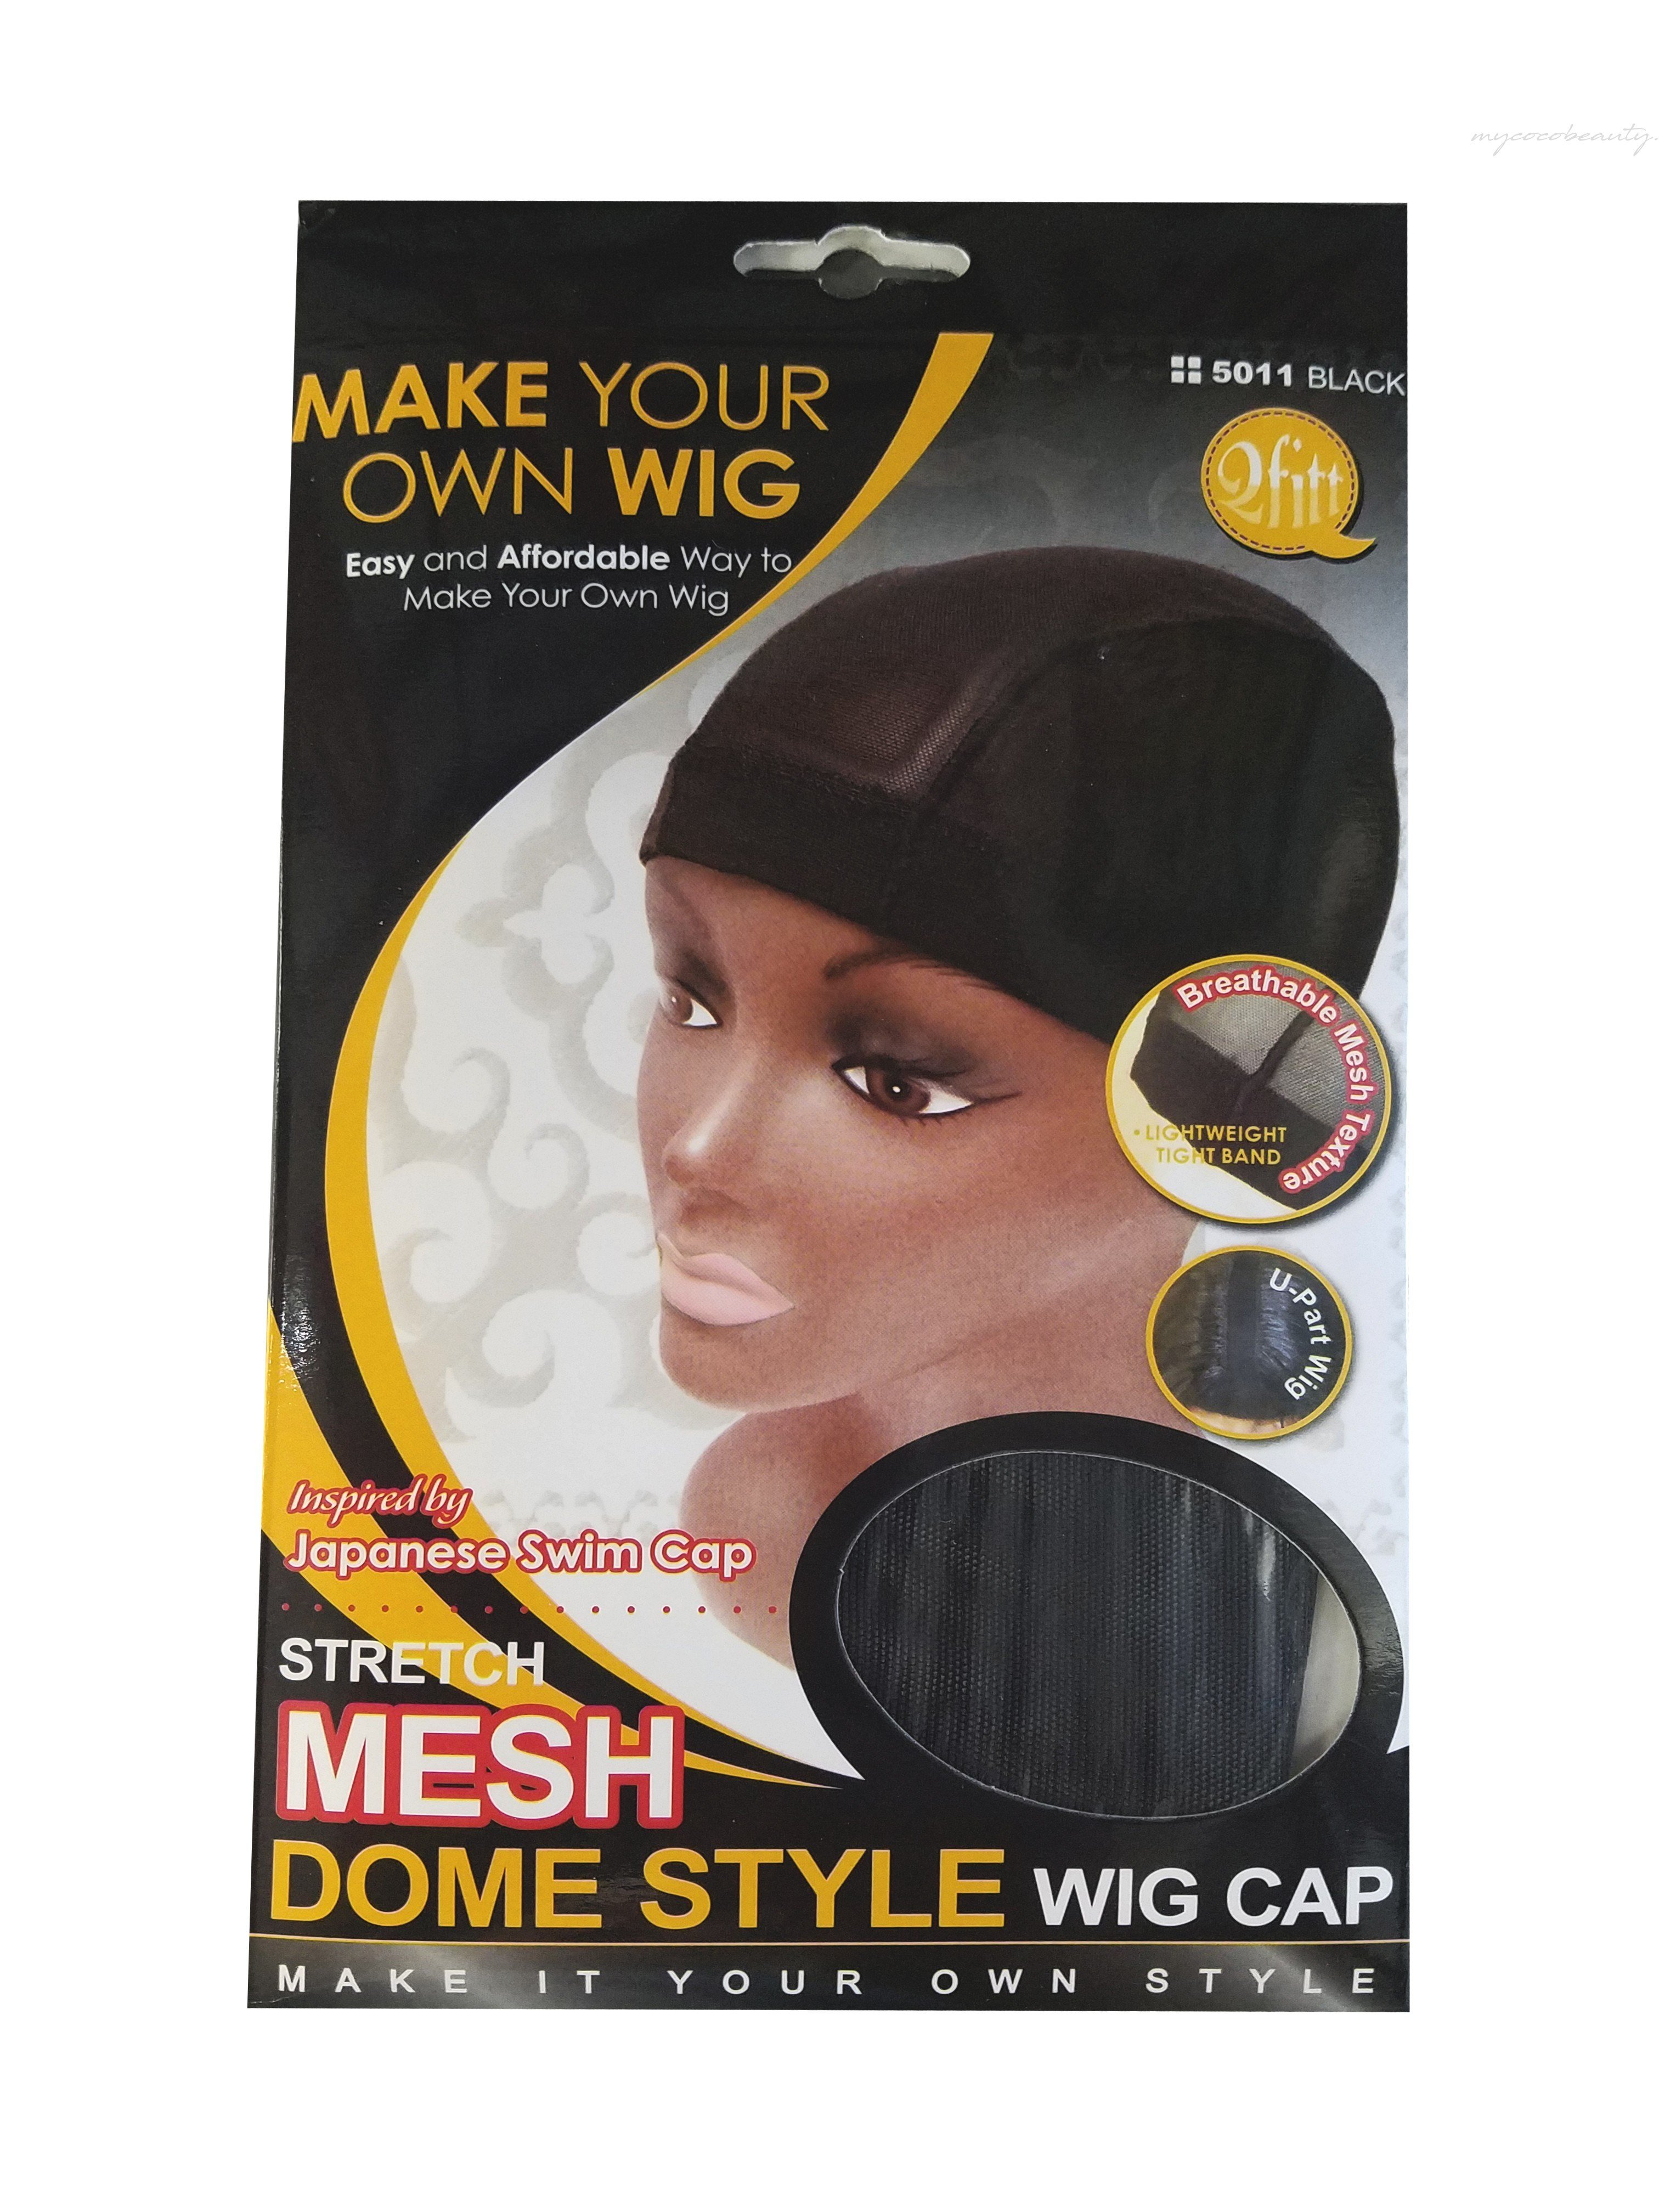 The Best Make Your Own Wig Mesh Dome Style Wig Cap Mycocobeauty Com Pictures